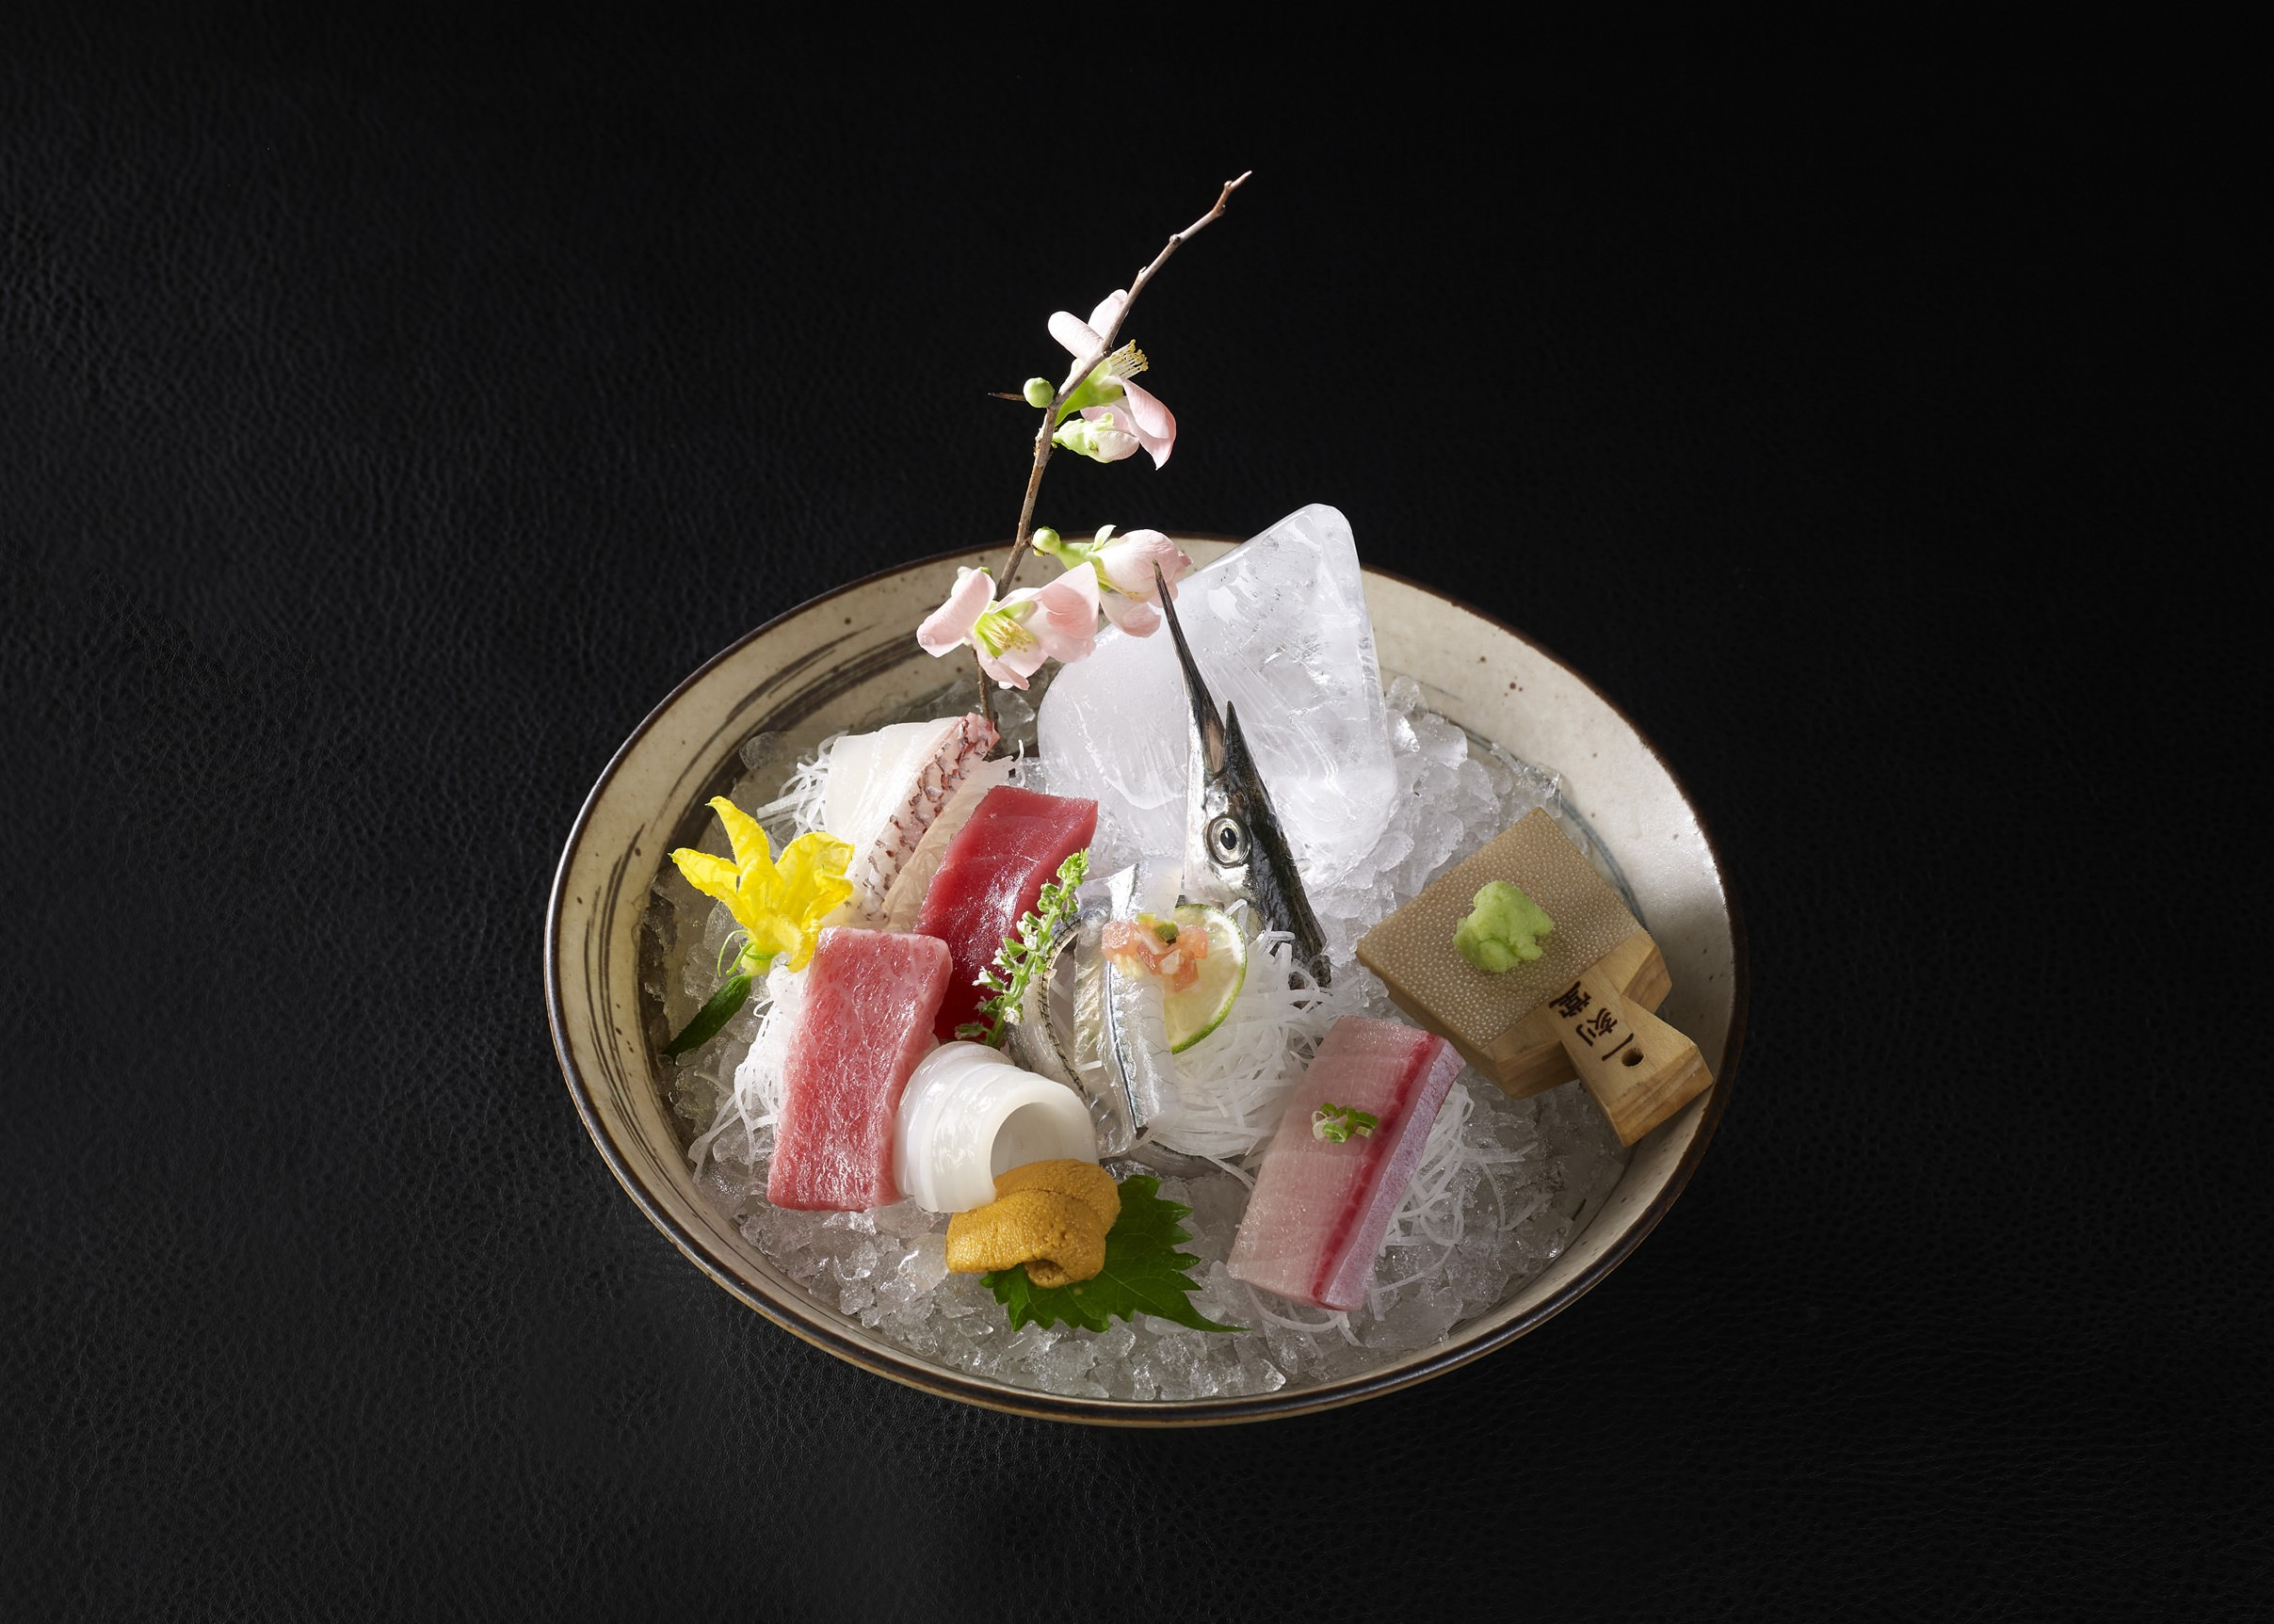 8. BONDST - High-end sushi & Japanese dishes in a chic, trendy atmosphere with a well-heeled crowd.